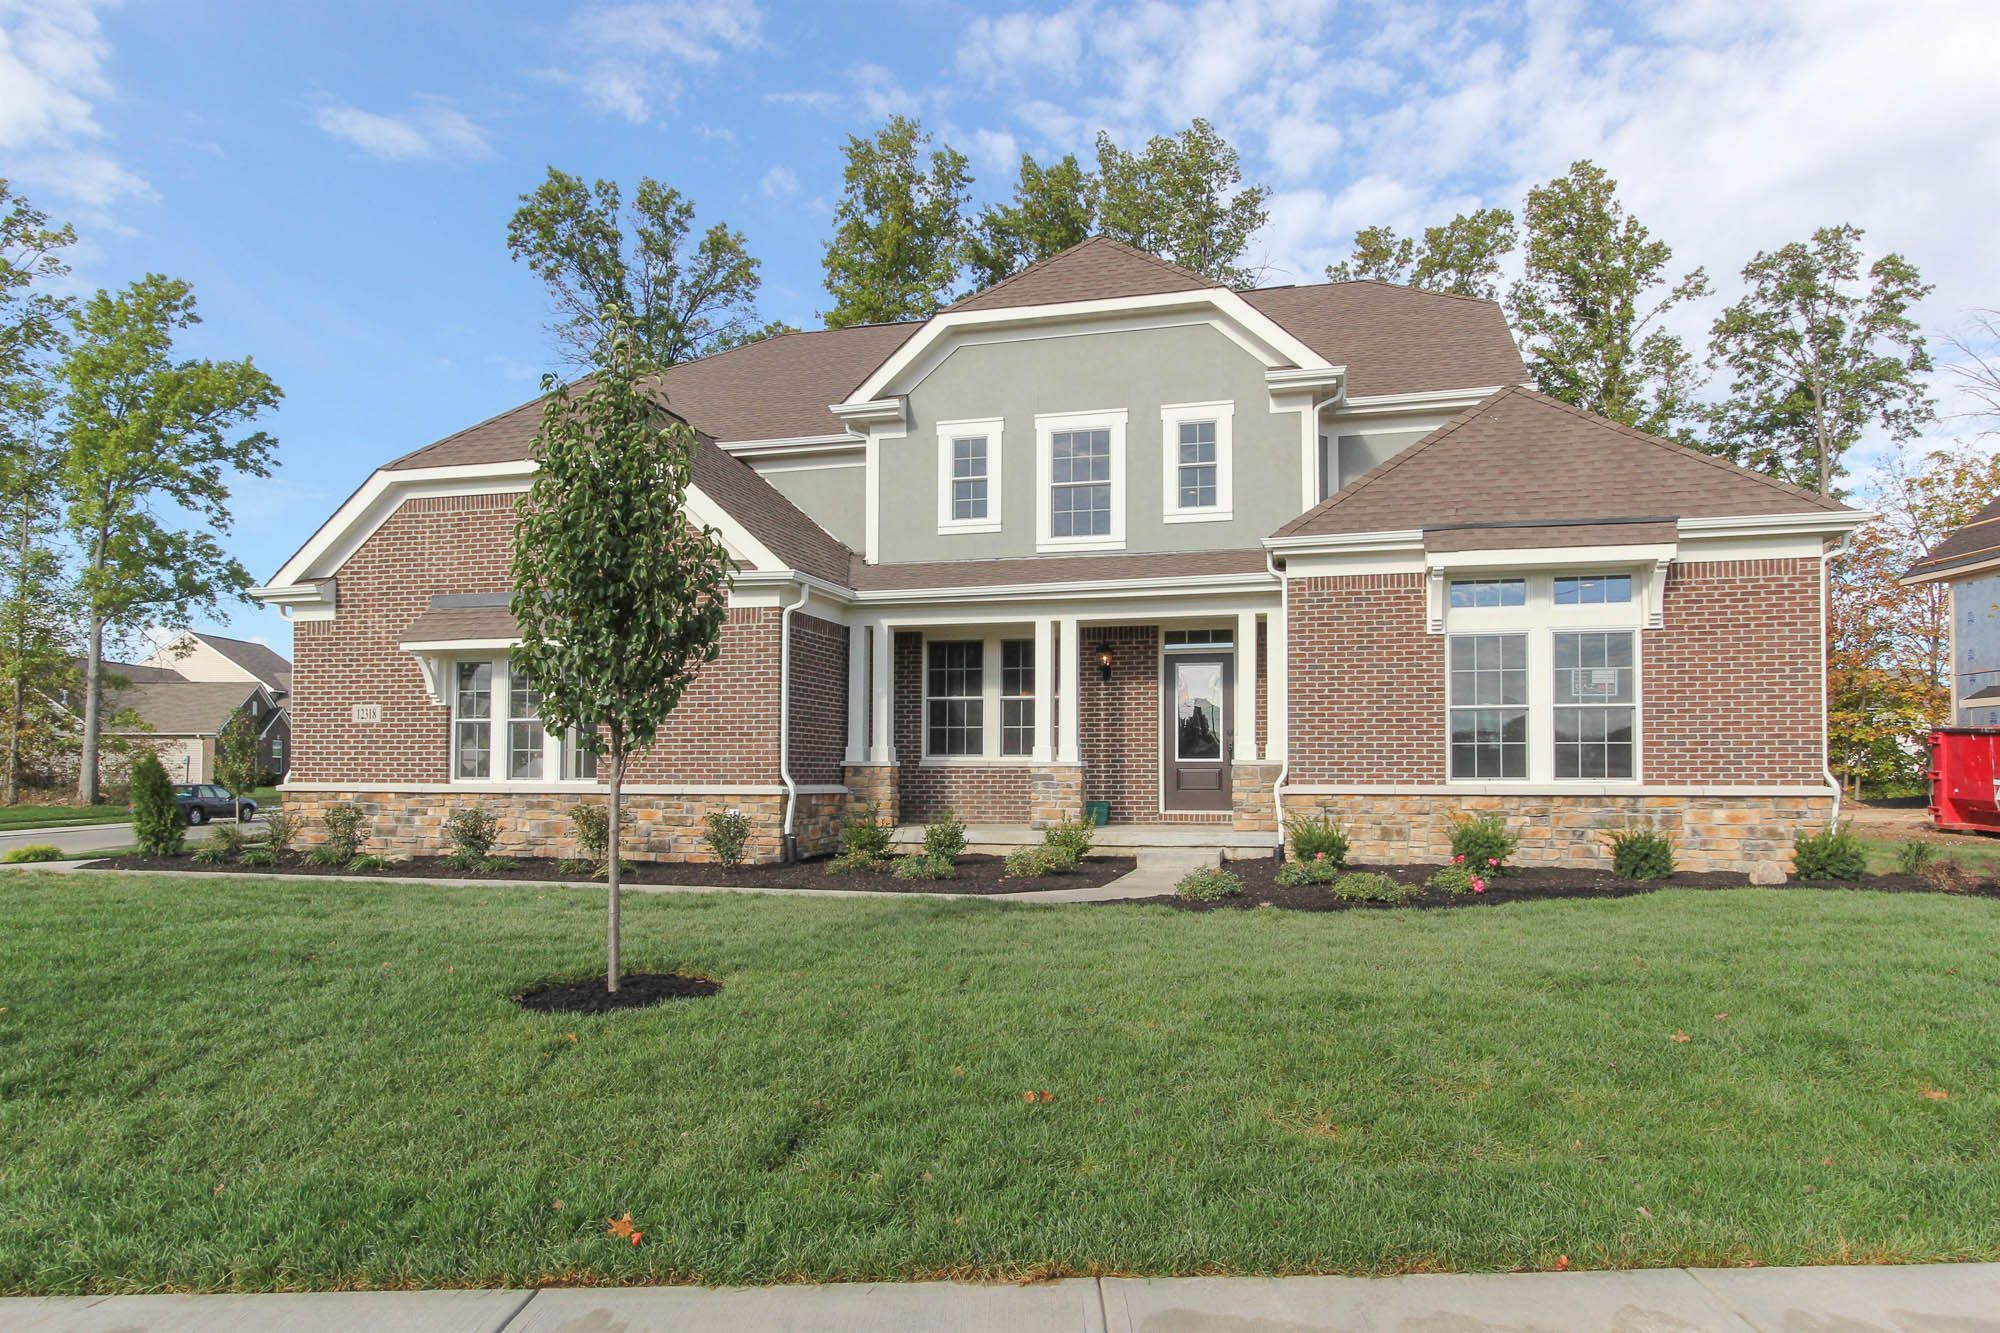 12318 Whispering Breeze Drive, Fishers, IN Homes & Land - Real Estate